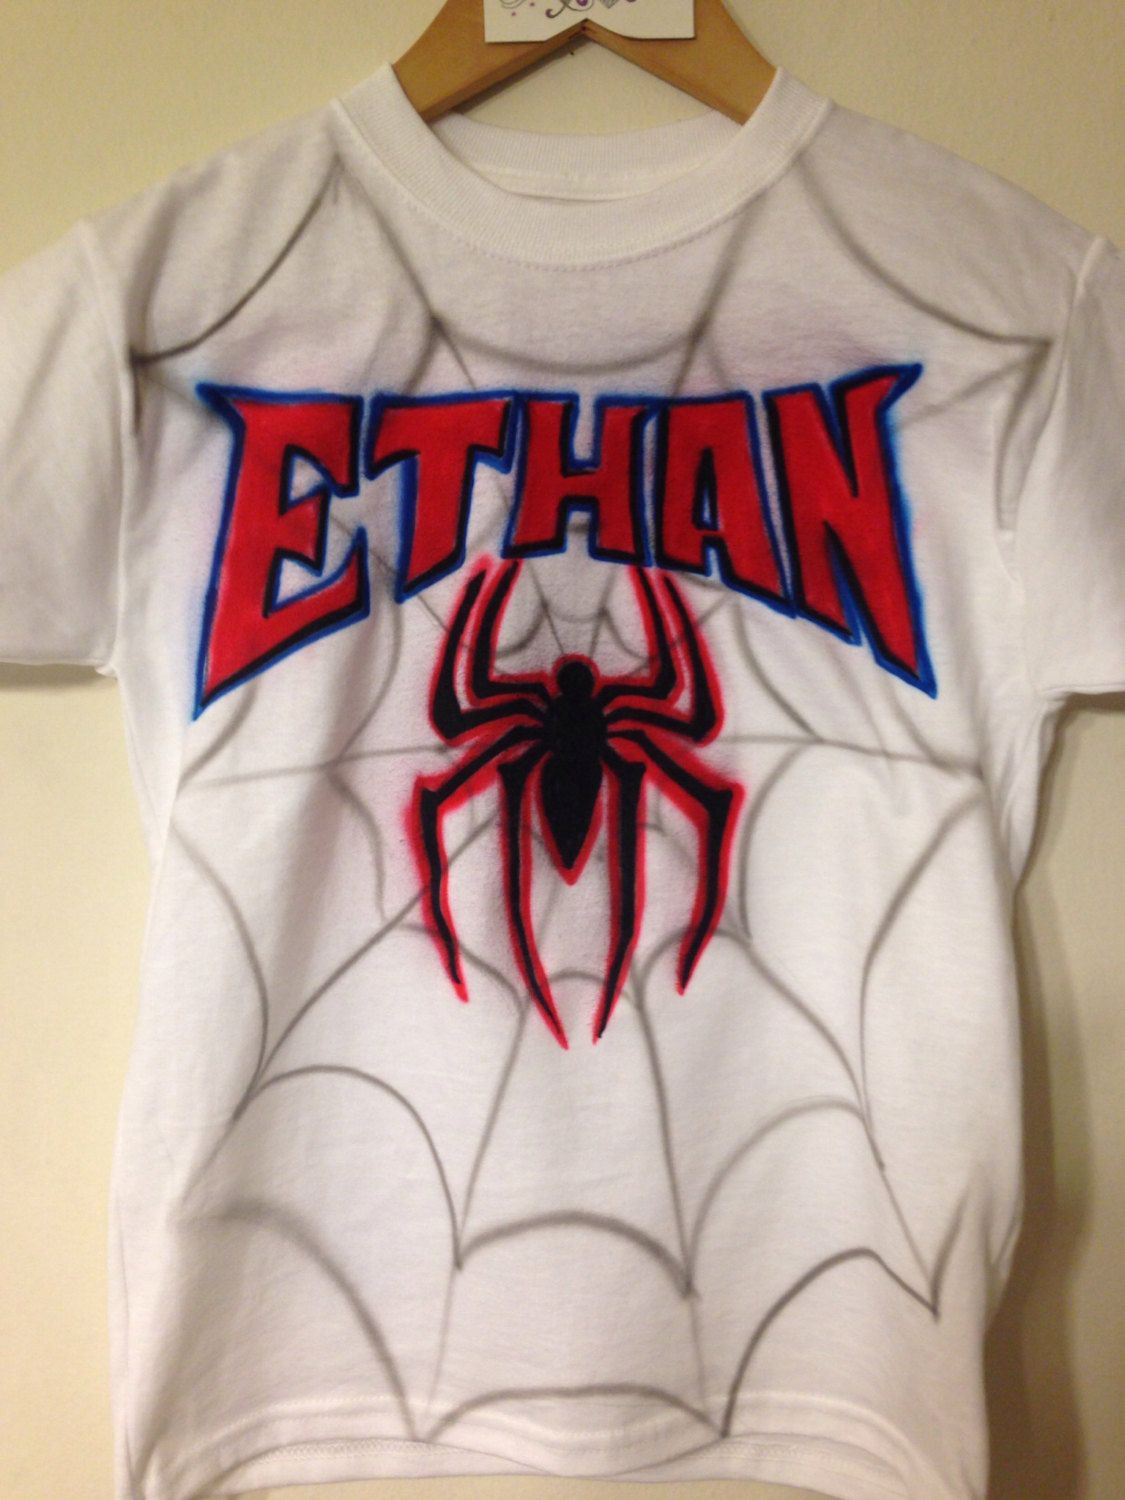 Design your own t shirt columbus ohio - Personalized Kid S Spider Man Inspired Airbrushed T Shirt